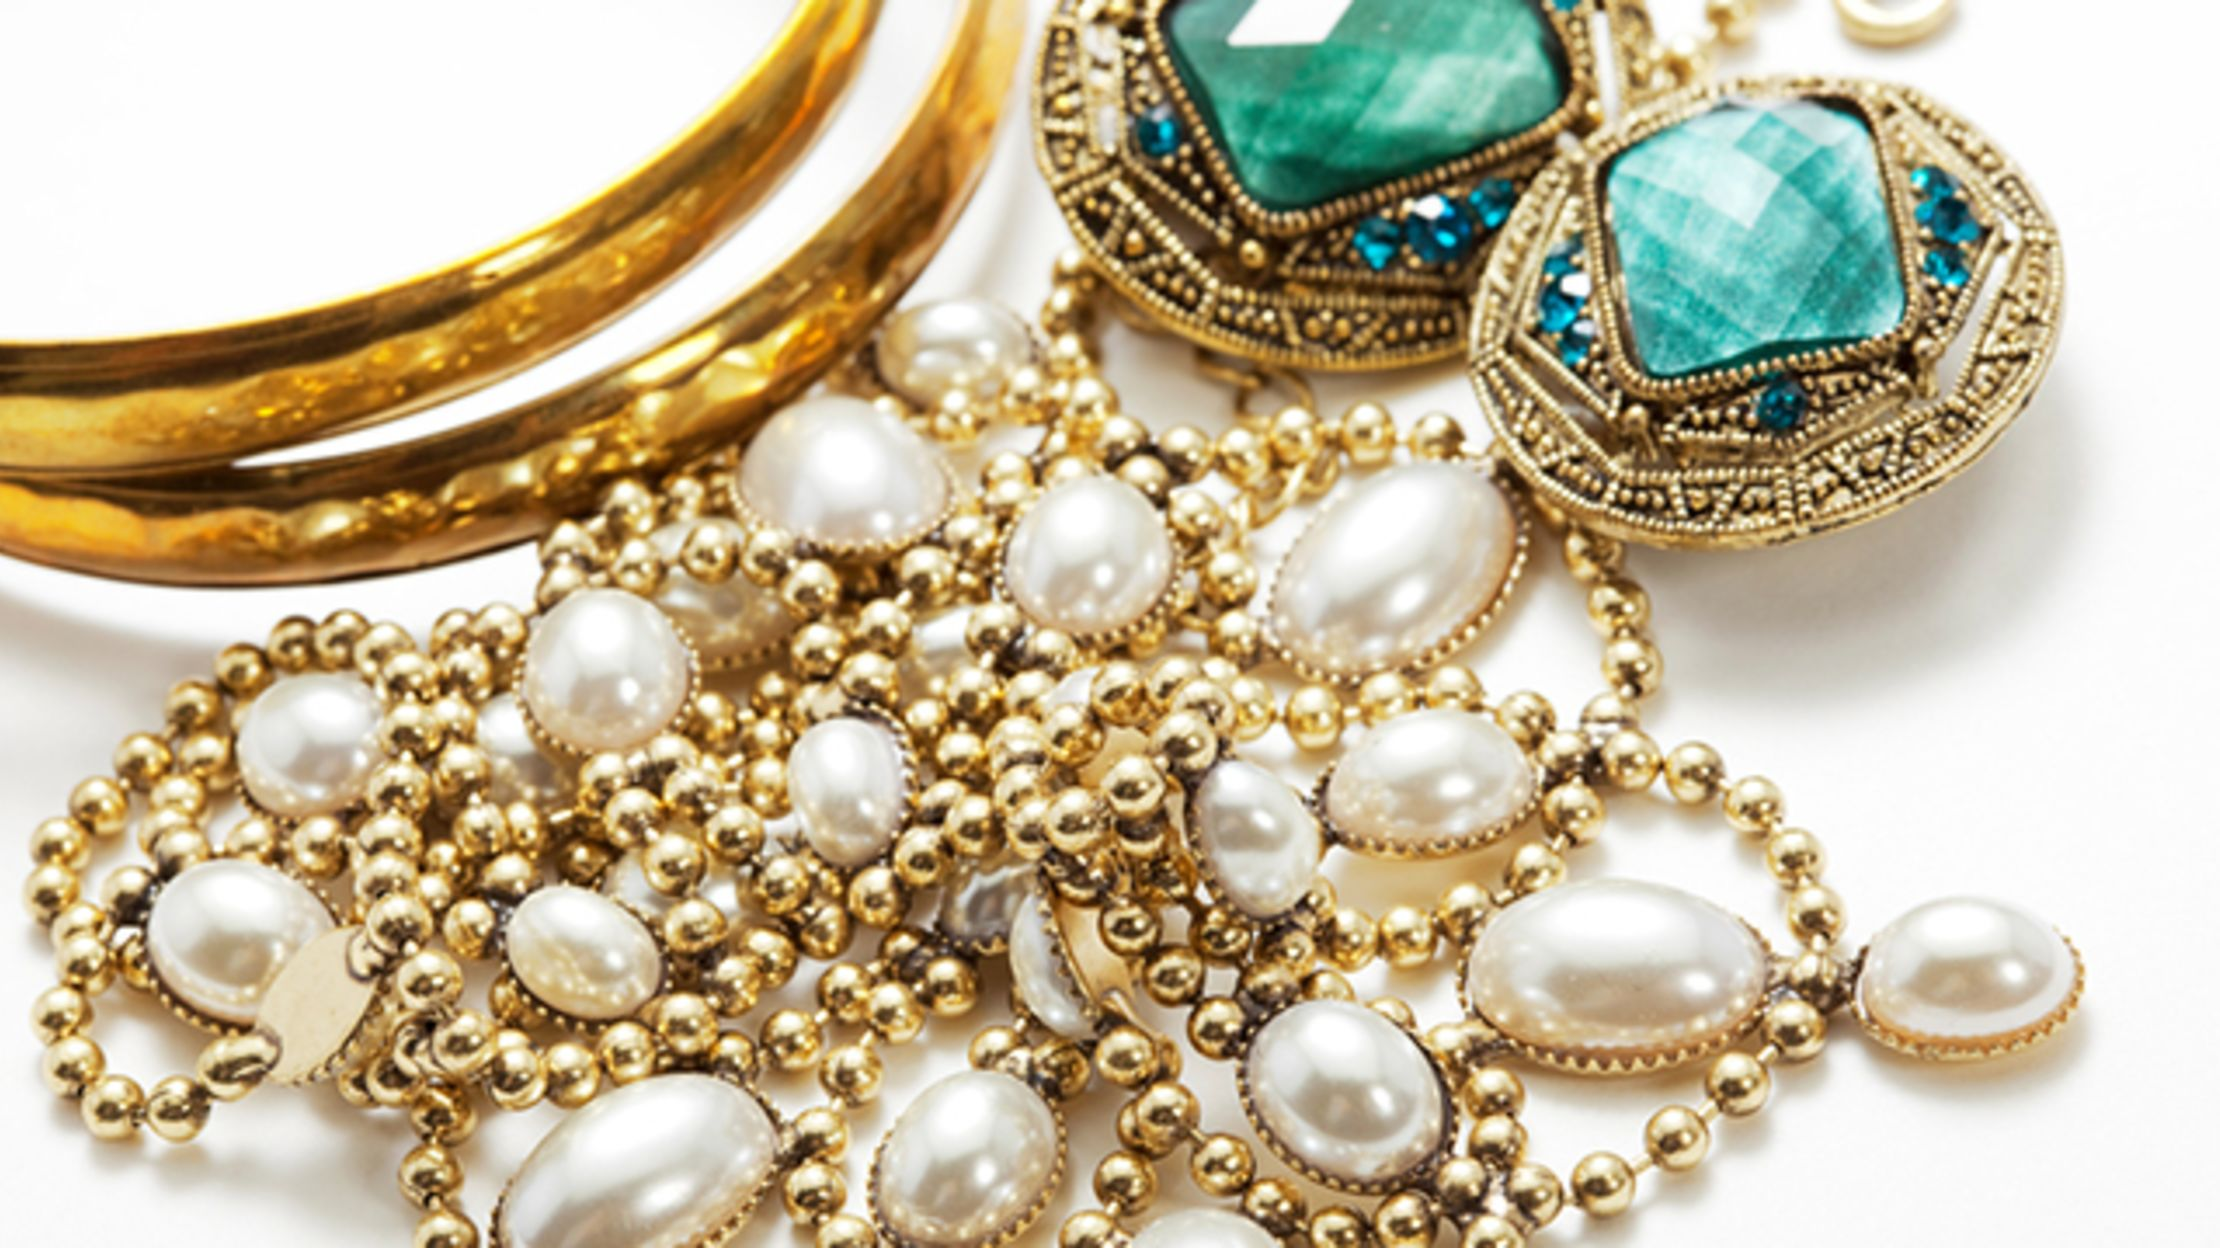 Are You Looking For Jewelry Advice?